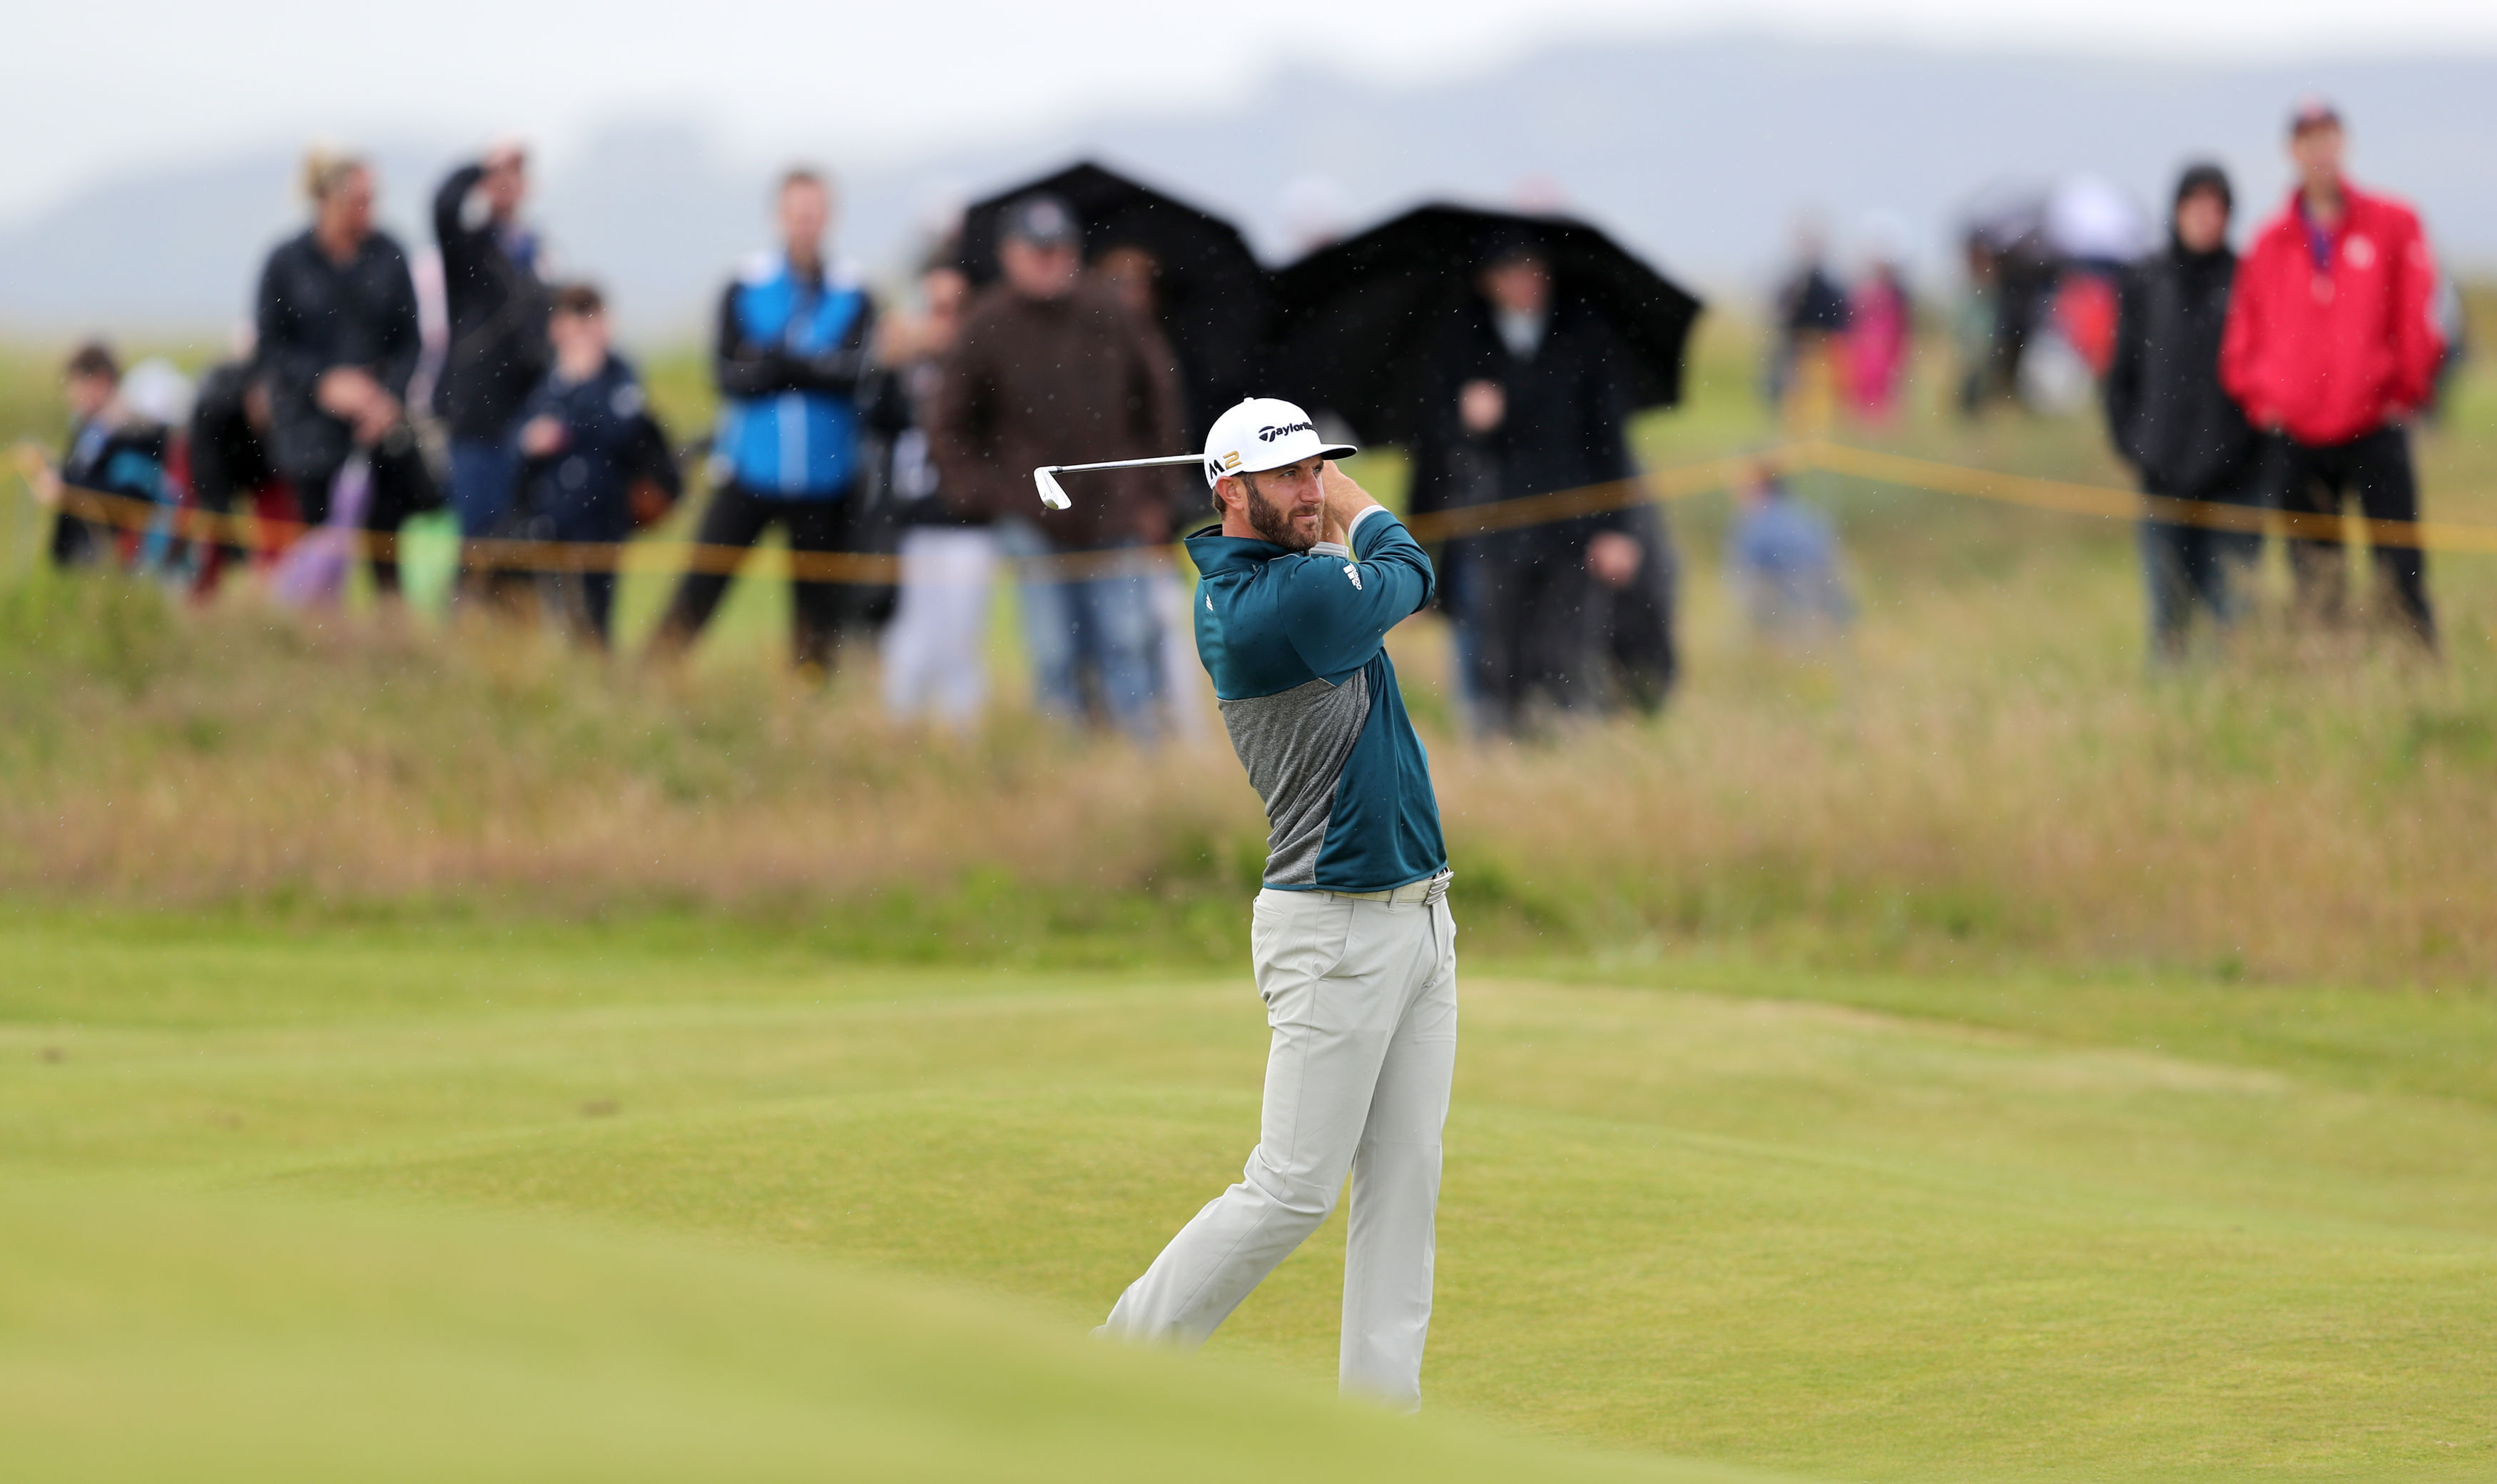 Dustin Johnson in practice for the Open Championship at Troon.